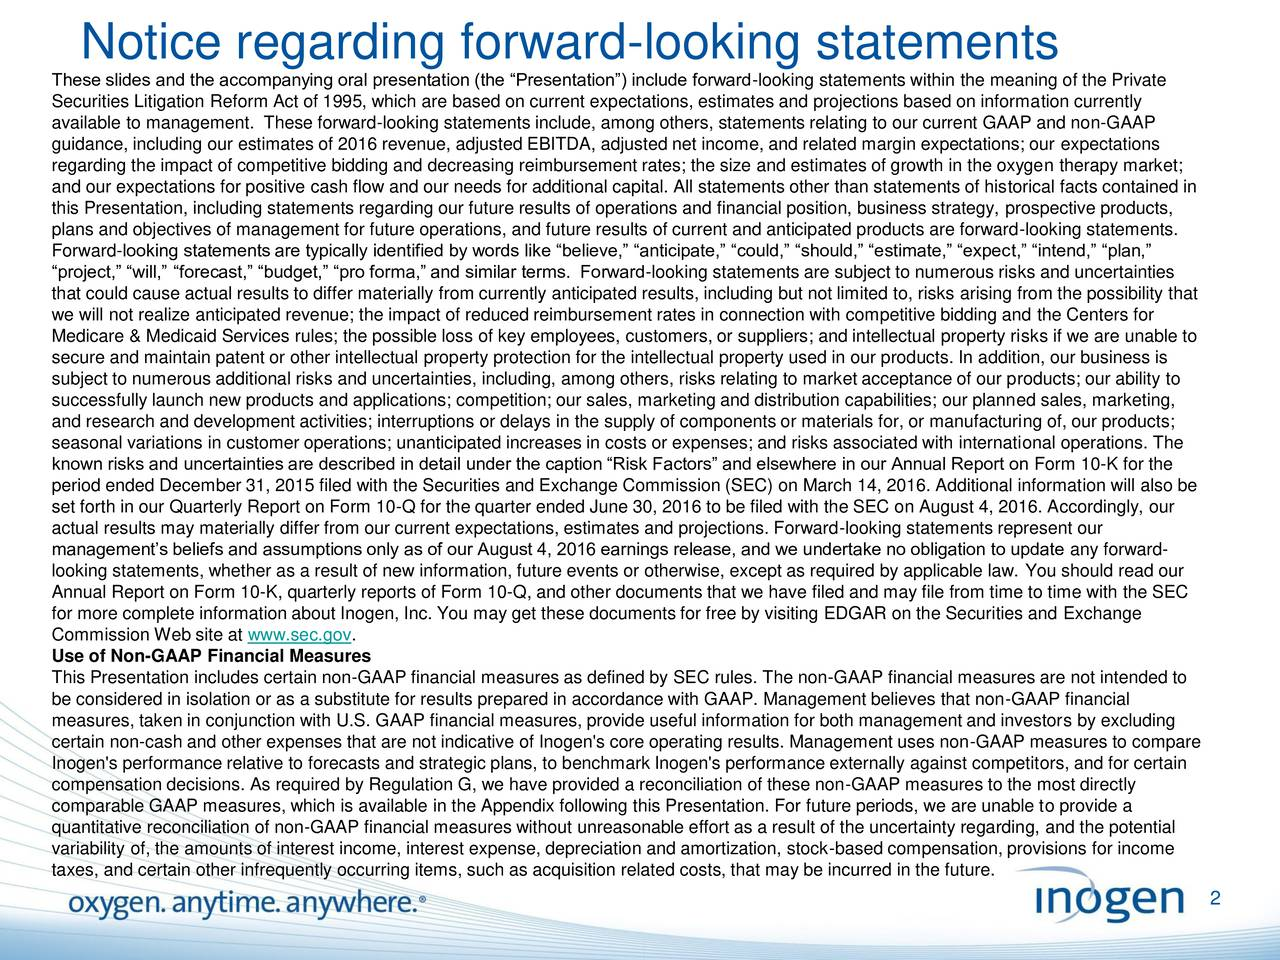 These slides and the accompanying oral presentation (the Presentation) include forward-looking statements within the meaning of the Private Securities Litigation Reform Act of 1995, which are based on current expectations, estimates and projections based on information currently available to management. These forward-looking statements include, among others, statements relating to our current GAAP and non-GAAP guidance, including our estimates of 2016 revenue, adjusted EBITDA, adjusted net income, and related margin expectations; our expectations regarding the impact of competitive bidding and decreasing reimbursement rates; the size and estimates of growth in the oxygen therapy market; and our expectations for positive cash flow and our needs for additional capital. All statements other than statements of historical facts contained in this Presentation, including statements regarding our future results of operations and financial position, business strategy, prospective products, plans and objectives of management for future operations, and future results of current and anticipated products are forward-looking statements. Forward-looking statements are typically identified by words like believe, anticipate, could, should, estimate, expect, intend, plan, project, will, forecast, budget, pro forma, and similar terms. Forward-looking statements are subject to numerous risks and uncertainties that could cause actual results to differ materially from currently anticipated results, including but not limited to, risks arising from the possibility that we will not realize anticipated revenue; the impact of reduced reimbursement rates in connection with competitive bidding and the Centers for Medicare & Medicaid Services rules; the possible loss of key employees, customers, or suppliers; and intellectual property risks if we are unable to secure and maintain patent or other intellectual property protection for the intellectual property used in our products. In addition, our